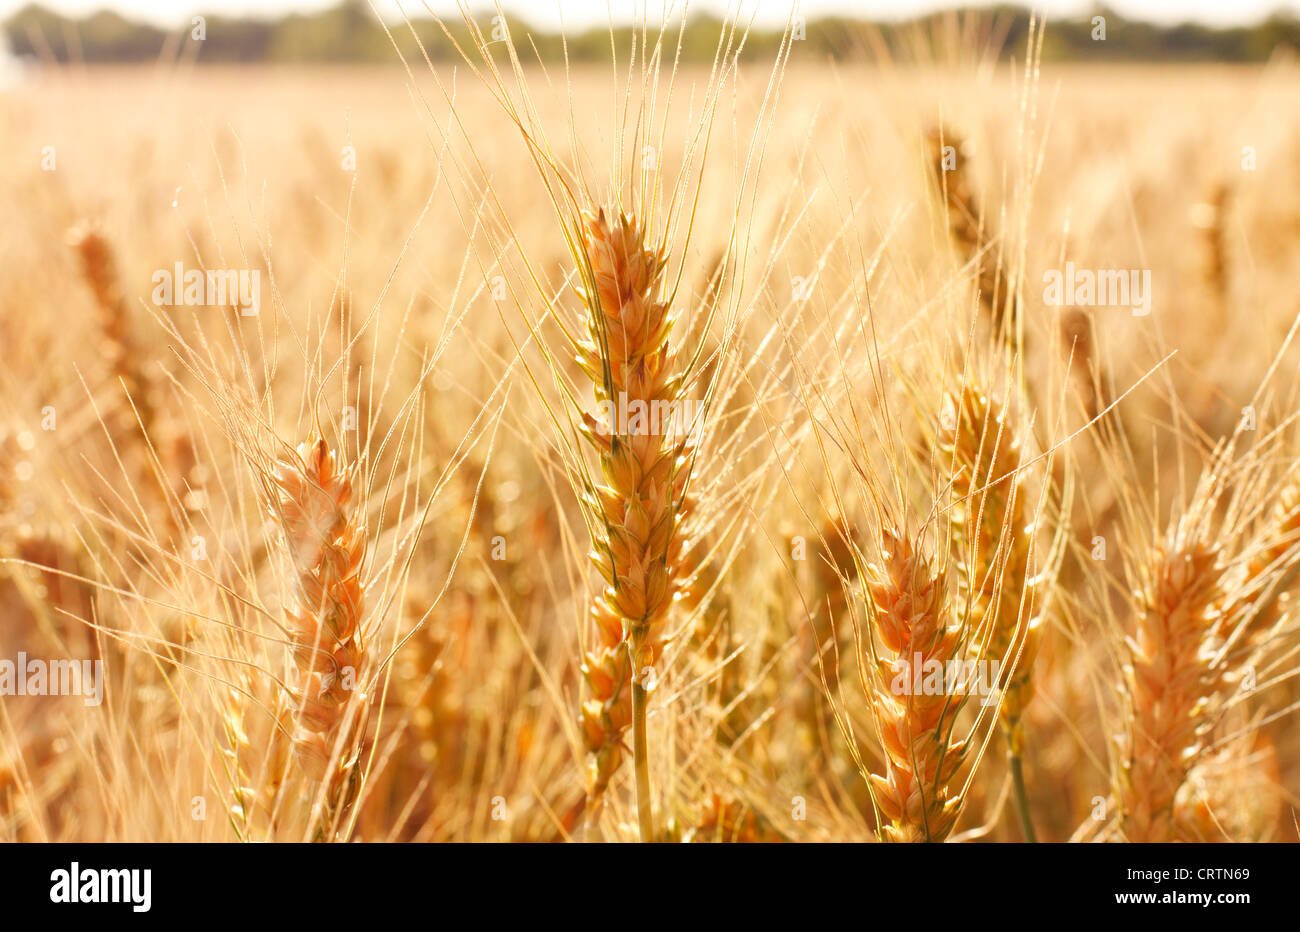 It's time to harvest grain. Wheat field - Stock Image